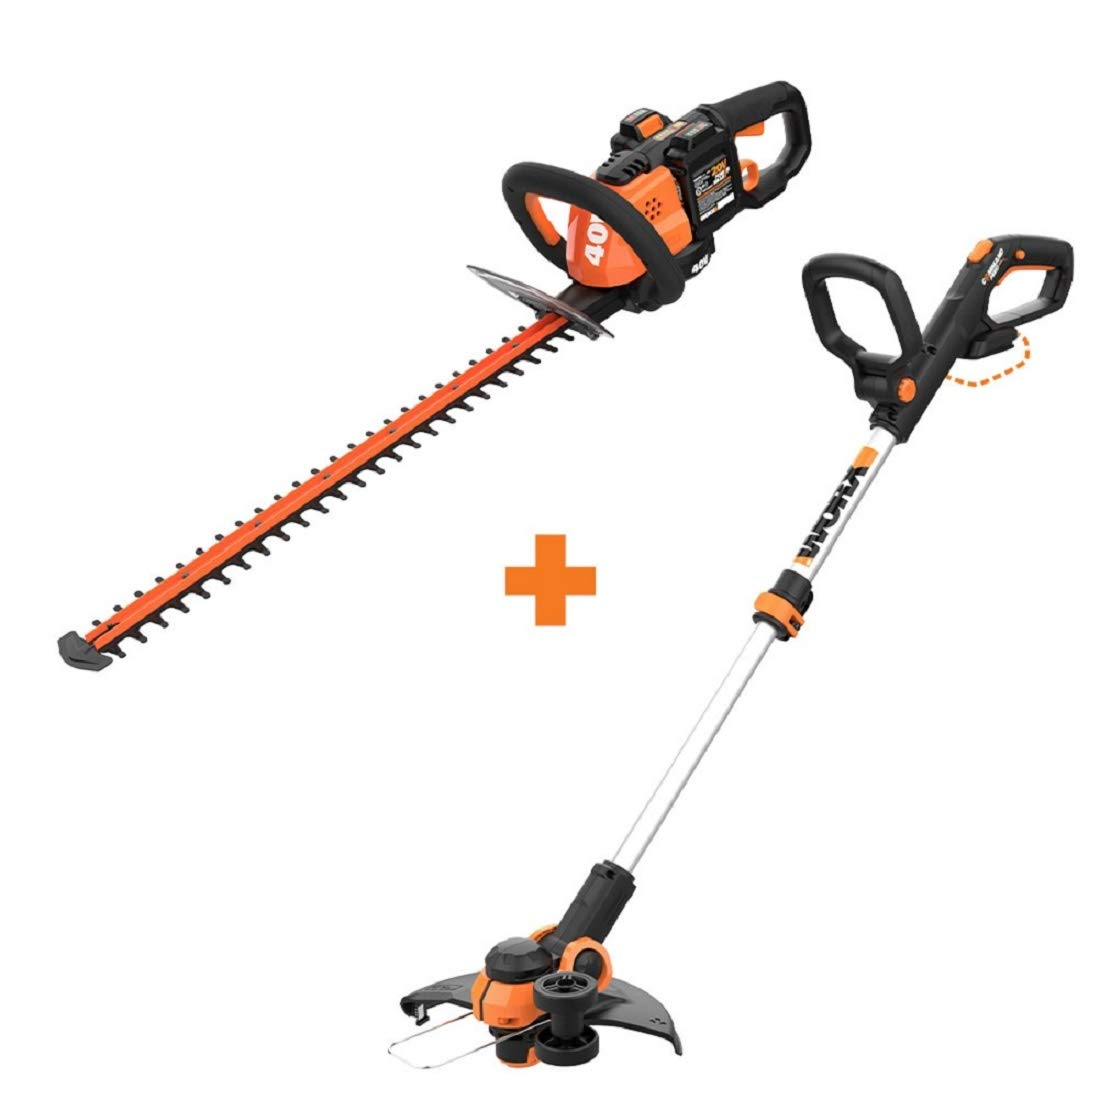 EGO Power ST1500 15-Inch 56-Volt Lithium-Ion Cordless Brushless String Trimmer Straight Shaft – Battery and Charger NOT Included